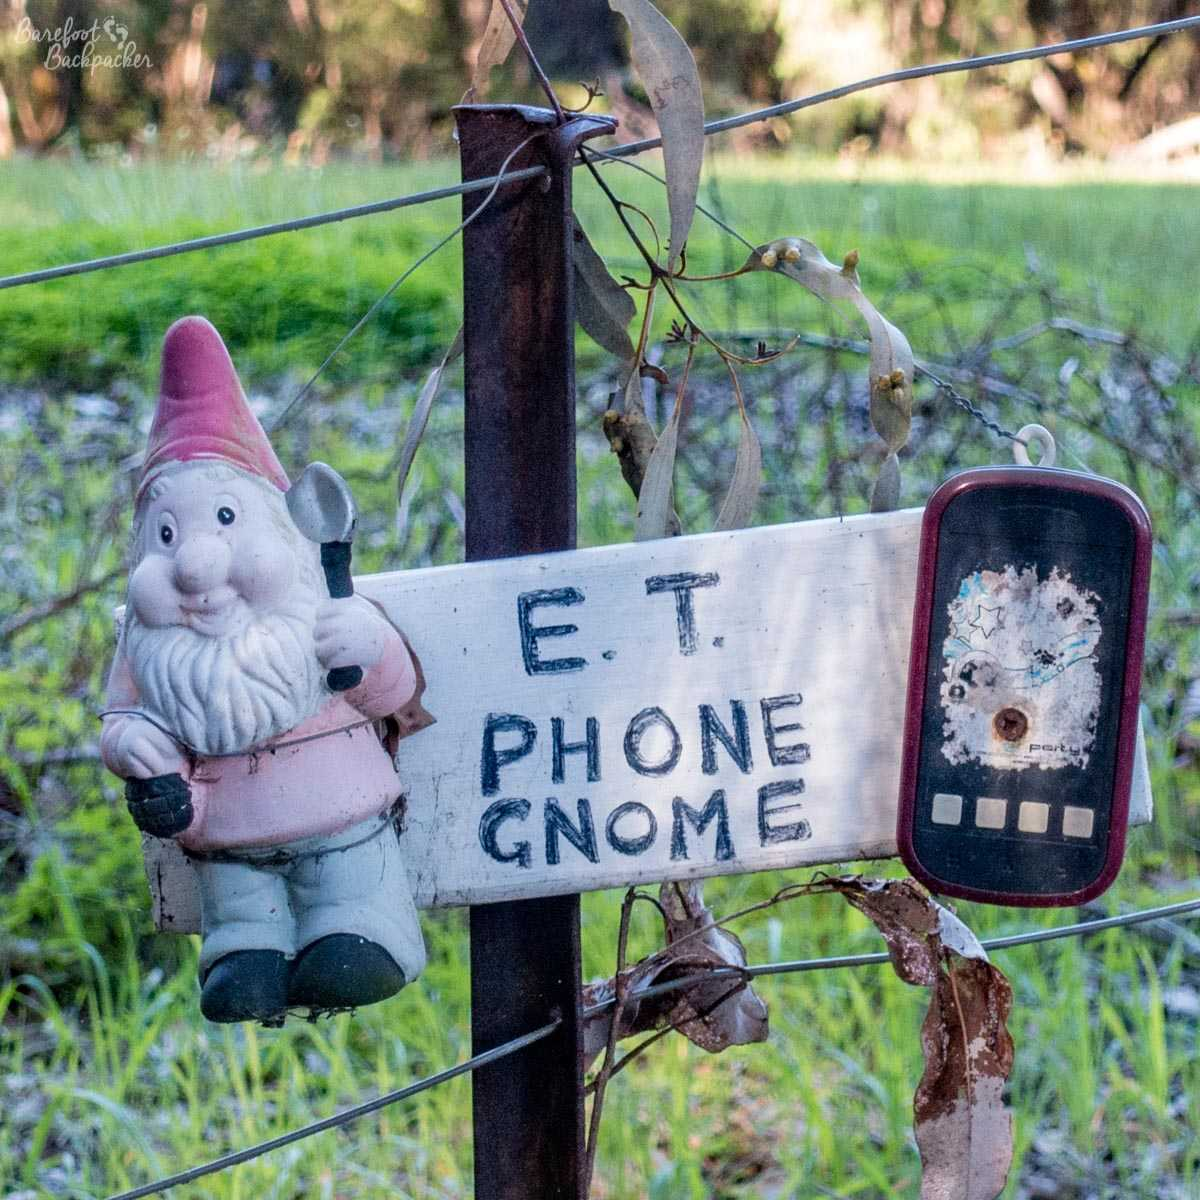 ET Phone Gnome, at Gnomesville